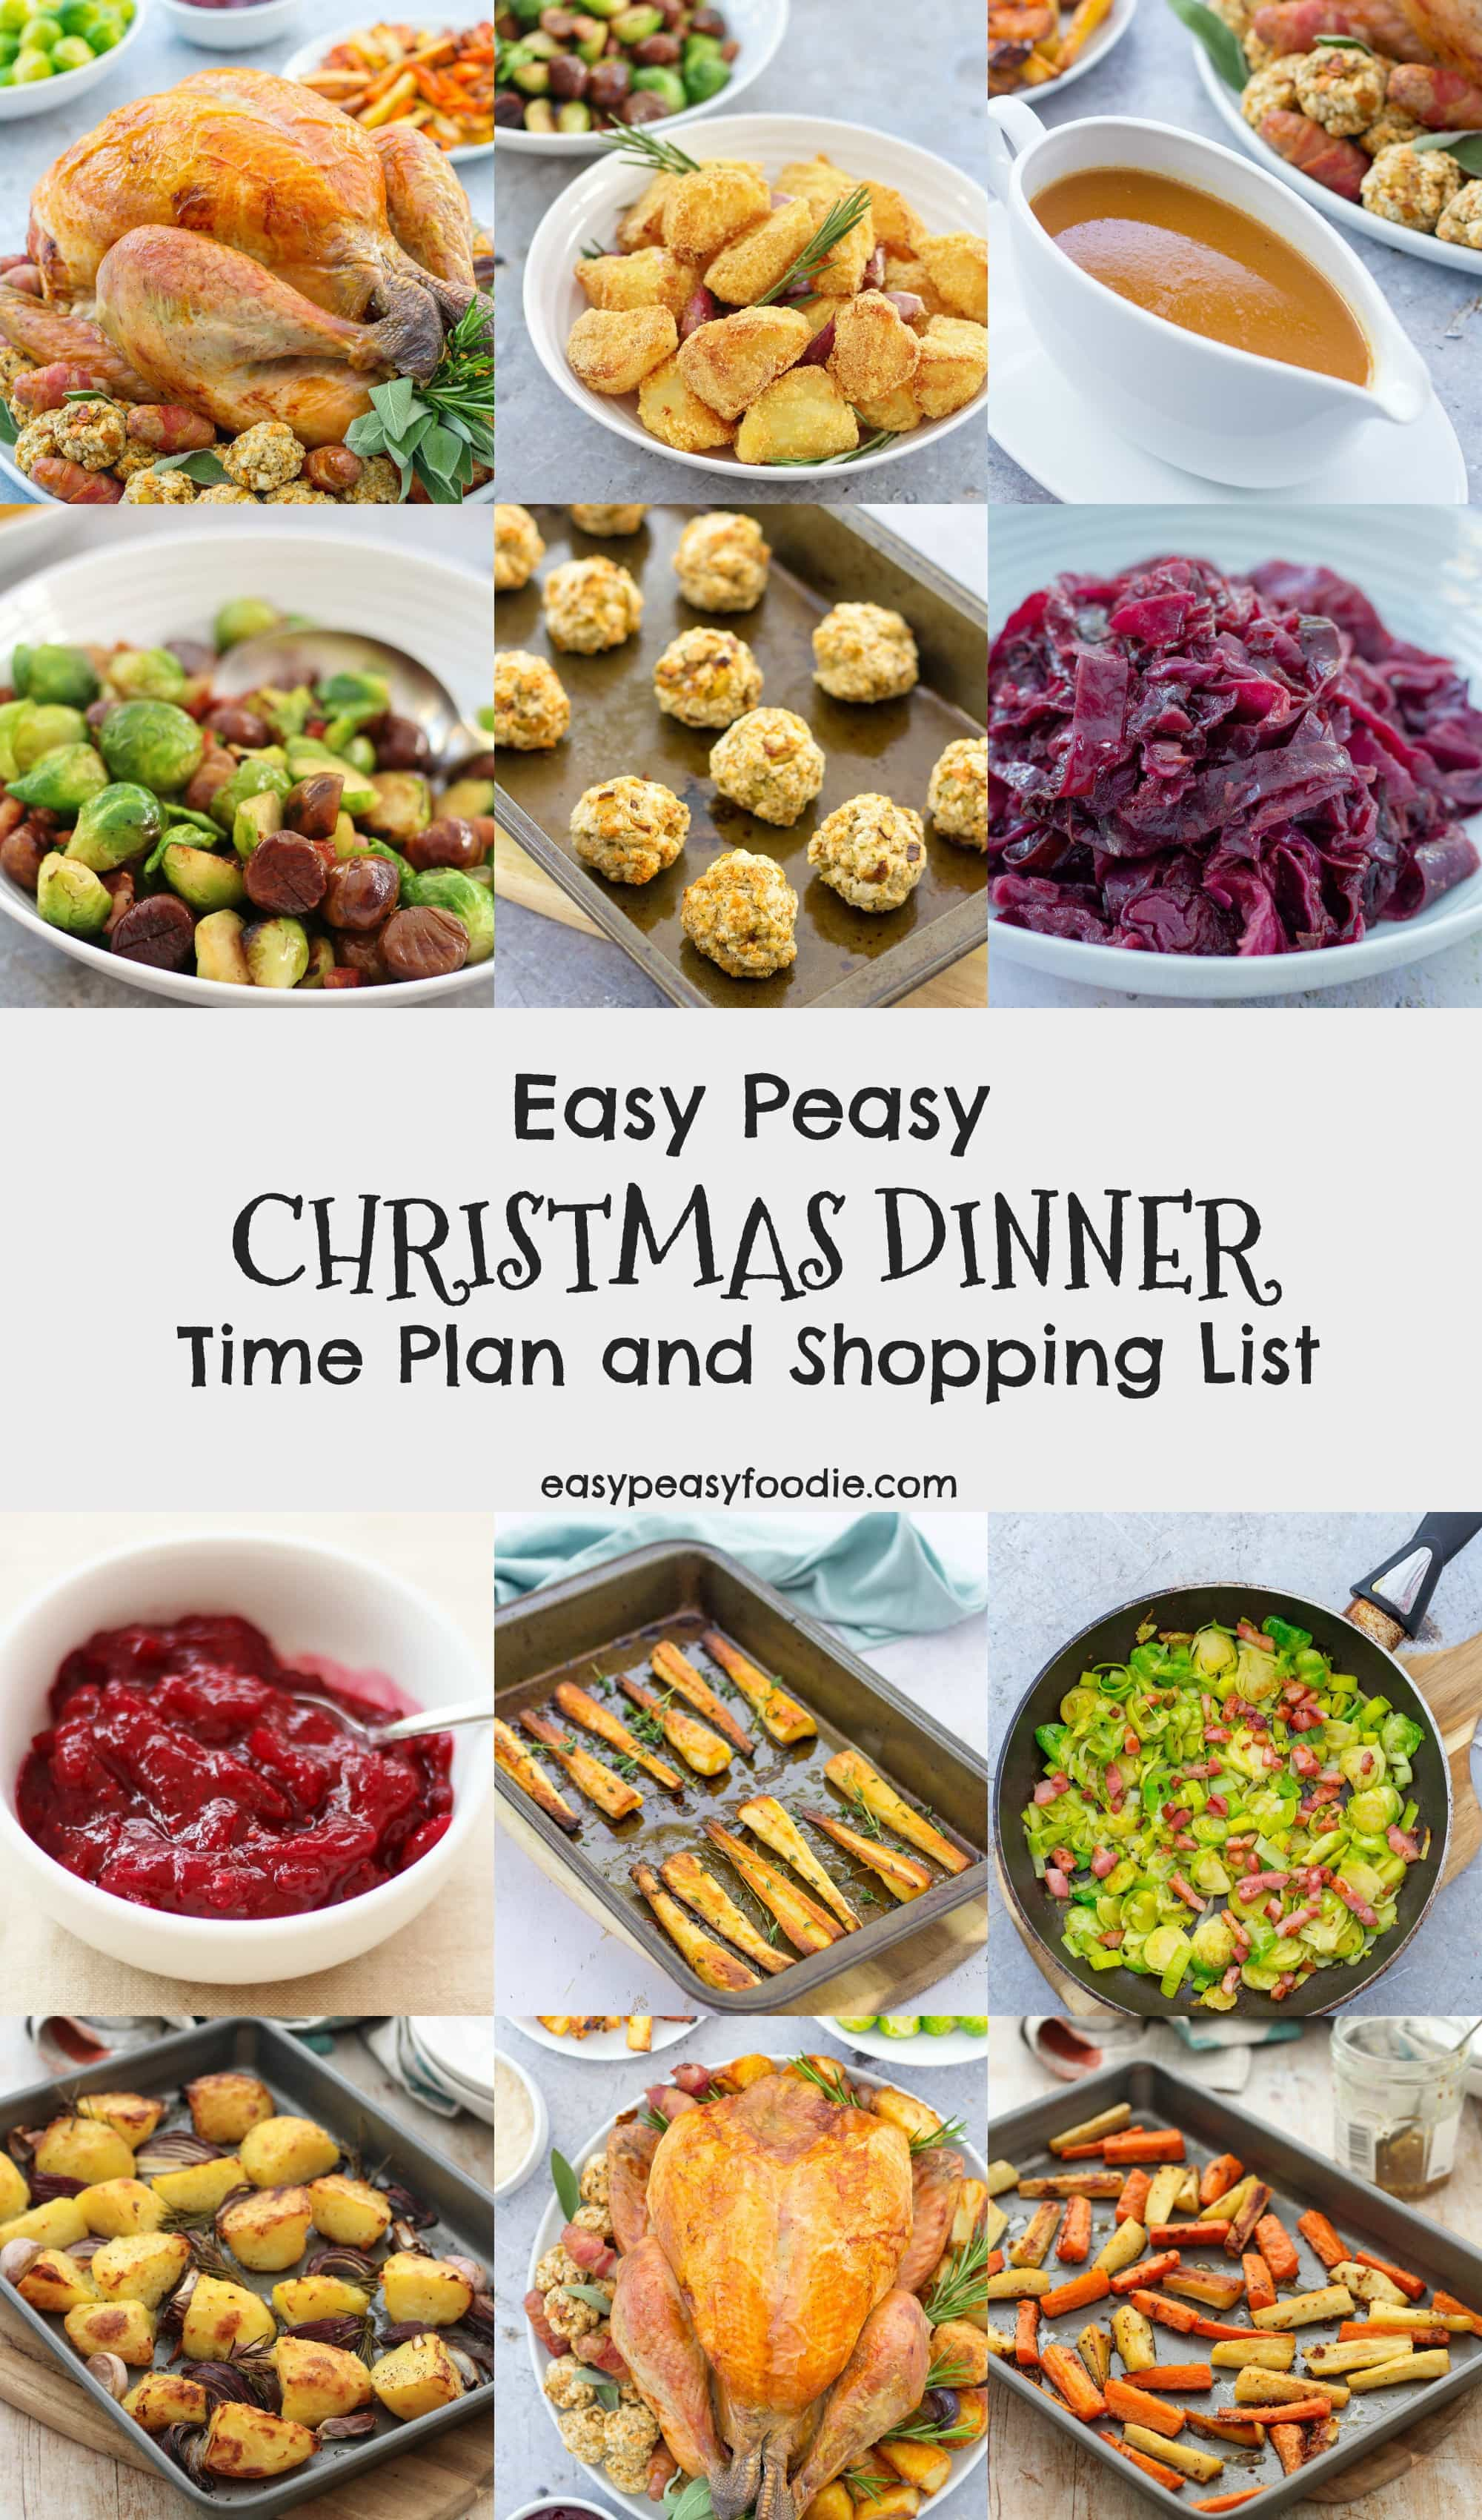 Easy Peasy Christmas Dinner Time Plan